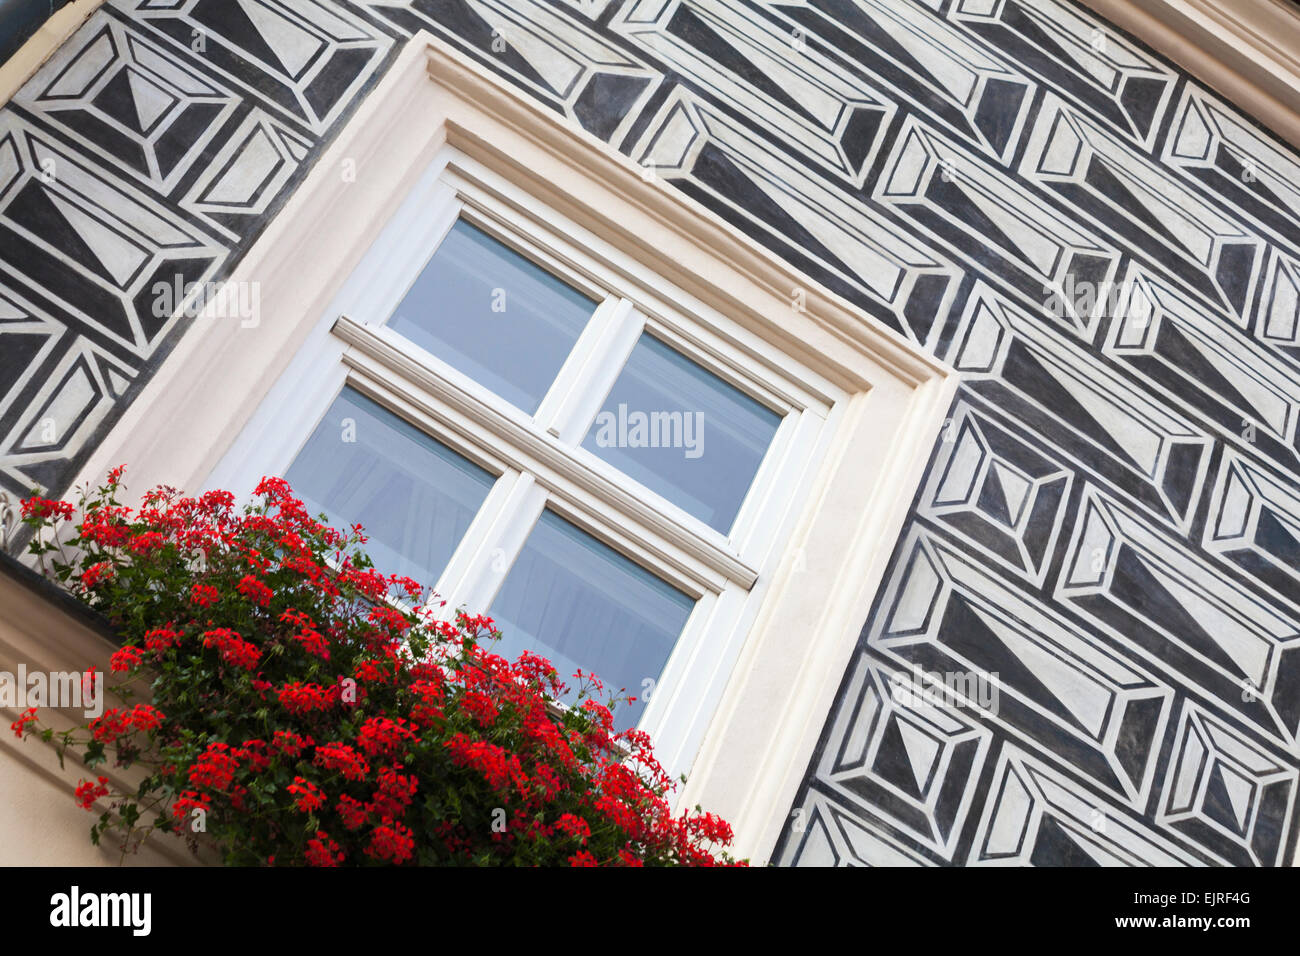 window box of red geraniums on house with sgraffito at Krakow, Poland in September - Stock Image